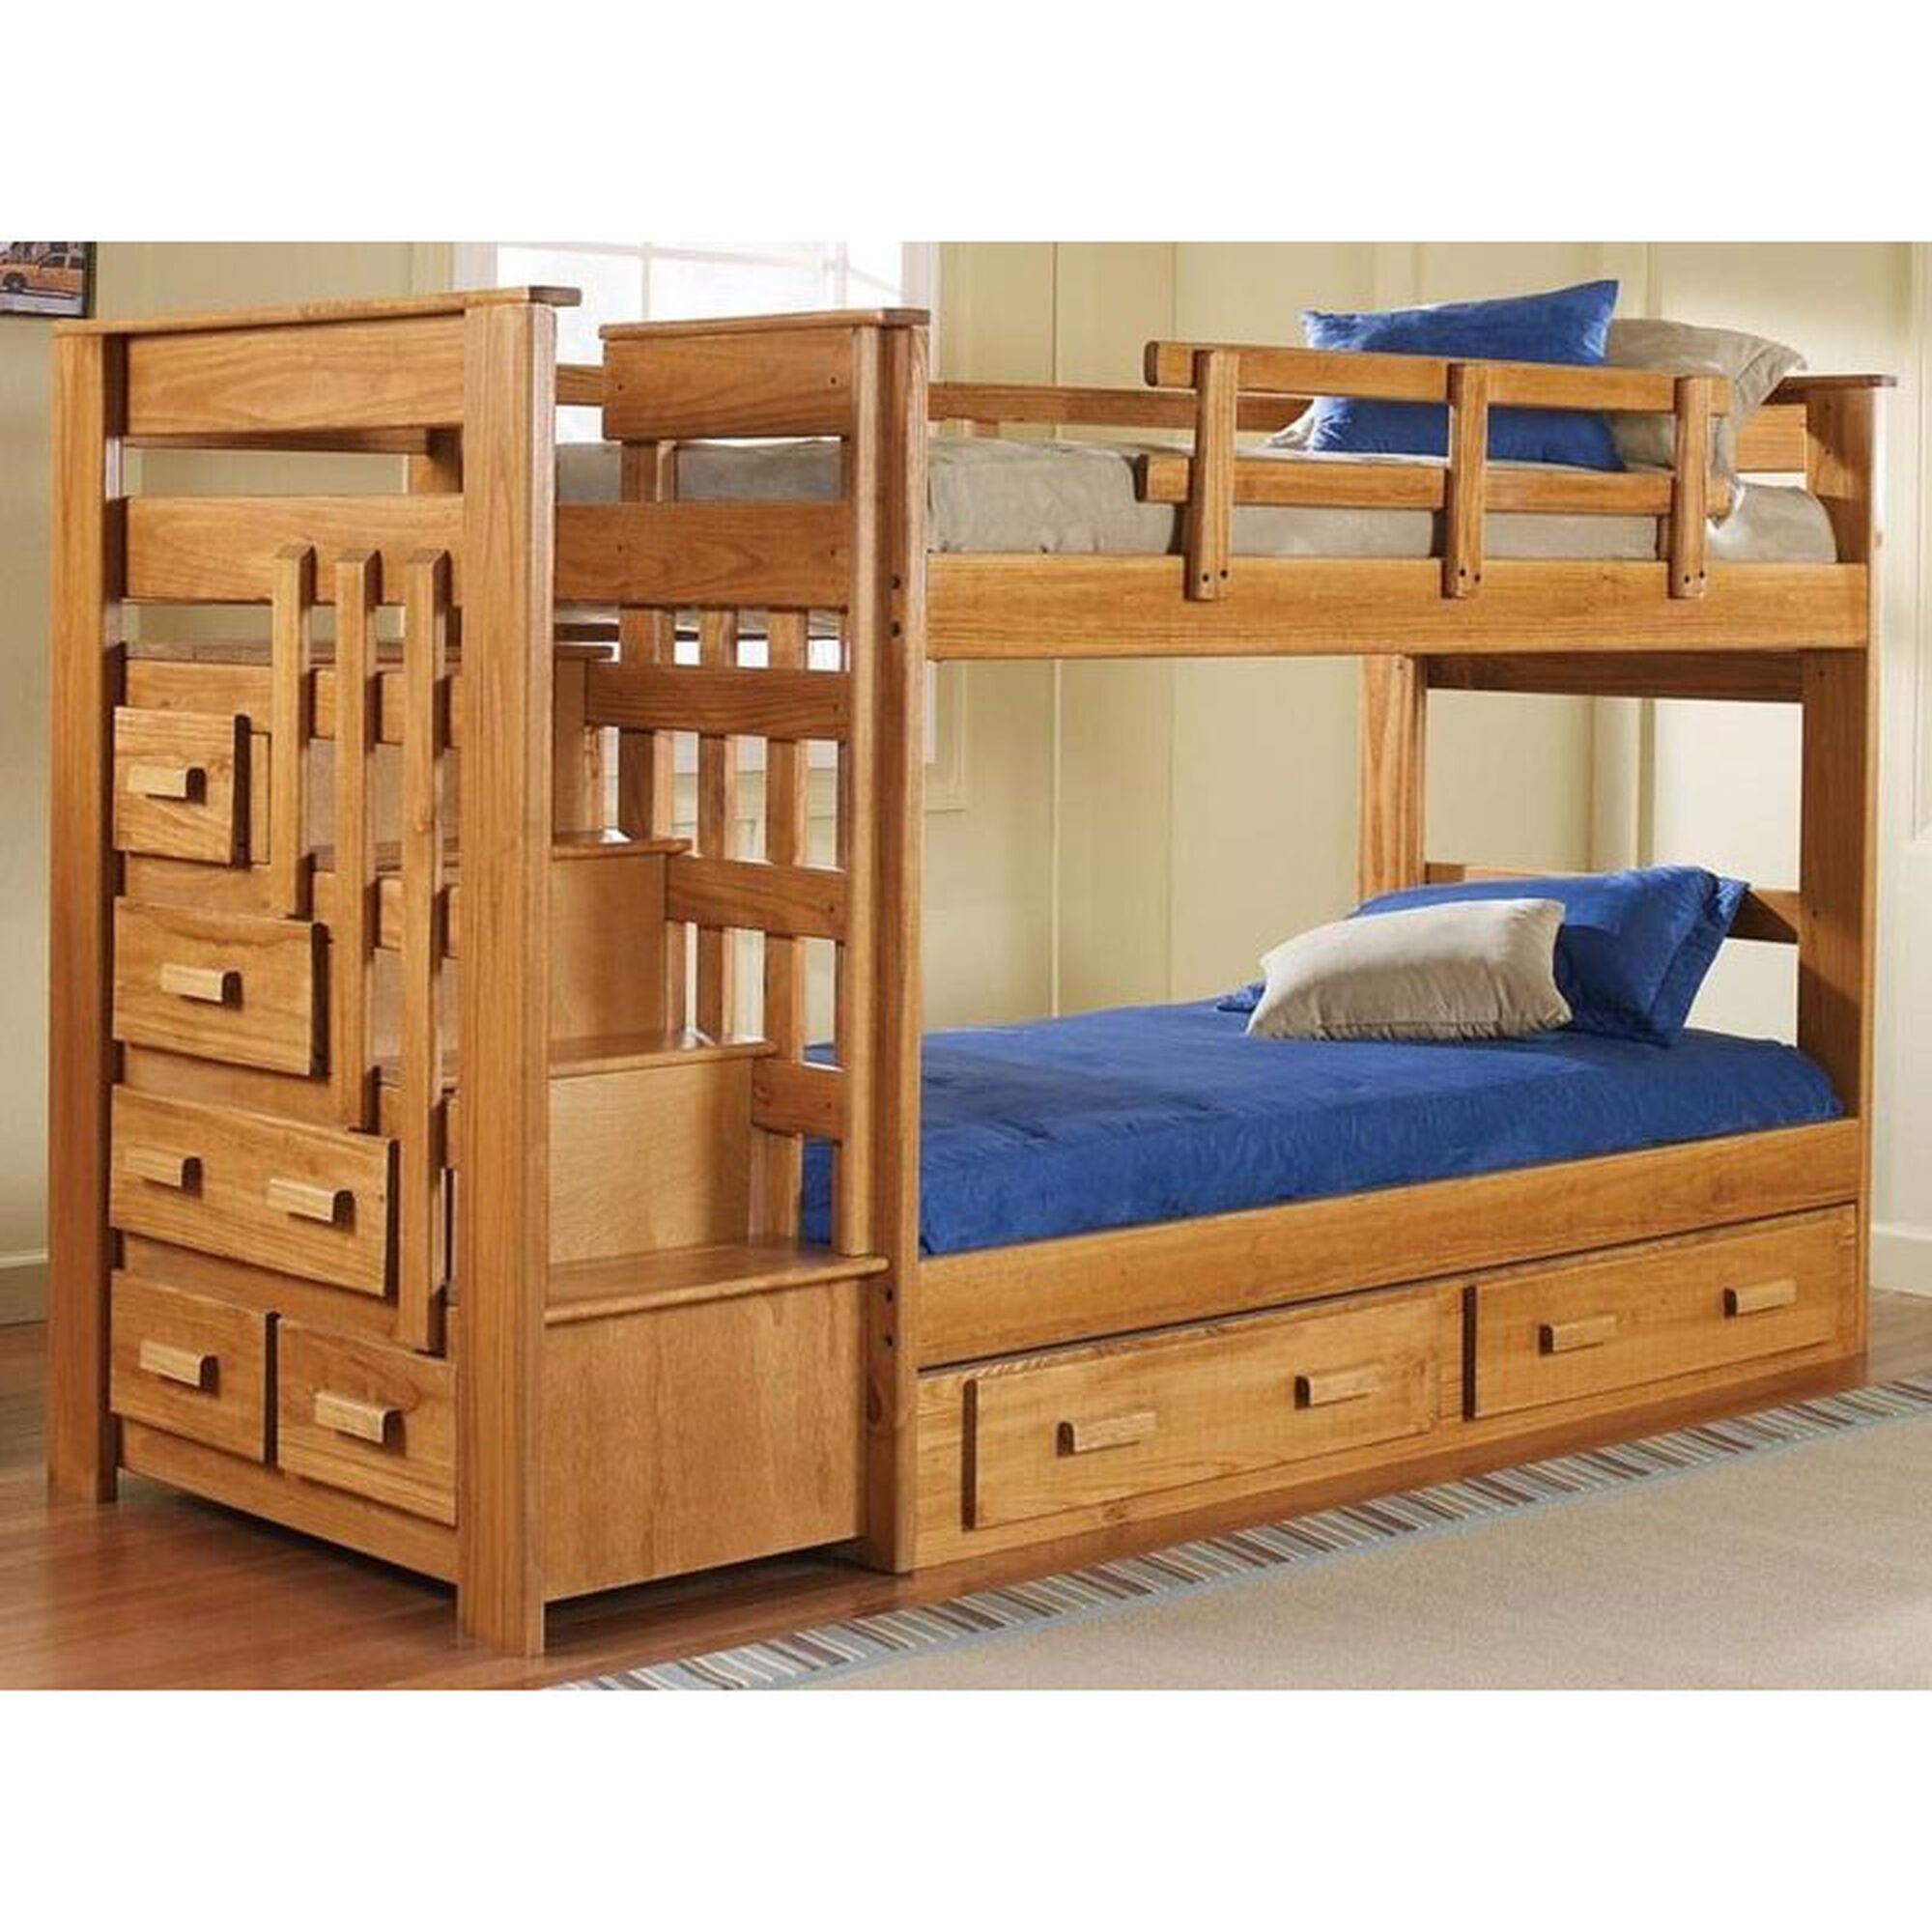 Chelsea Home Furniture Rustic Style Solid Pine Stairway Bed With Underbed Storage Twin Over